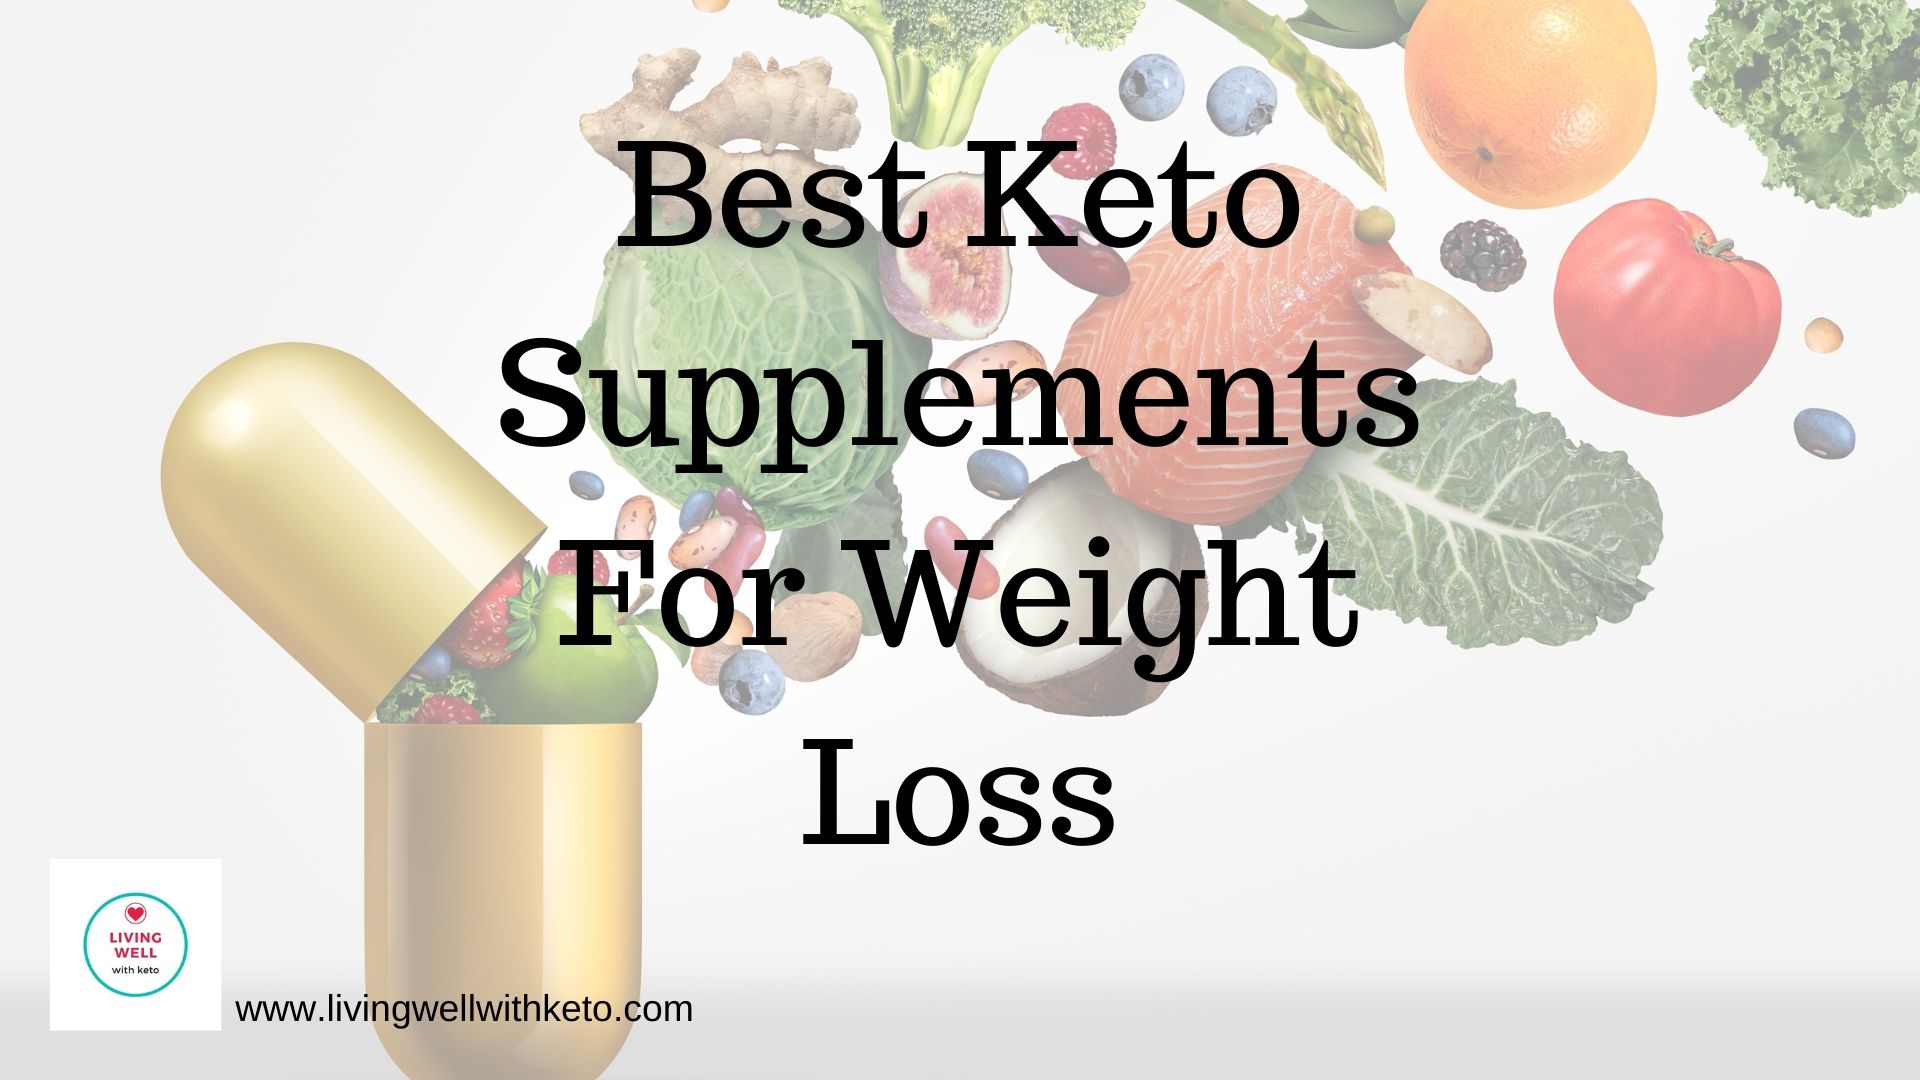 Best Keto Supplements For Weight Loss